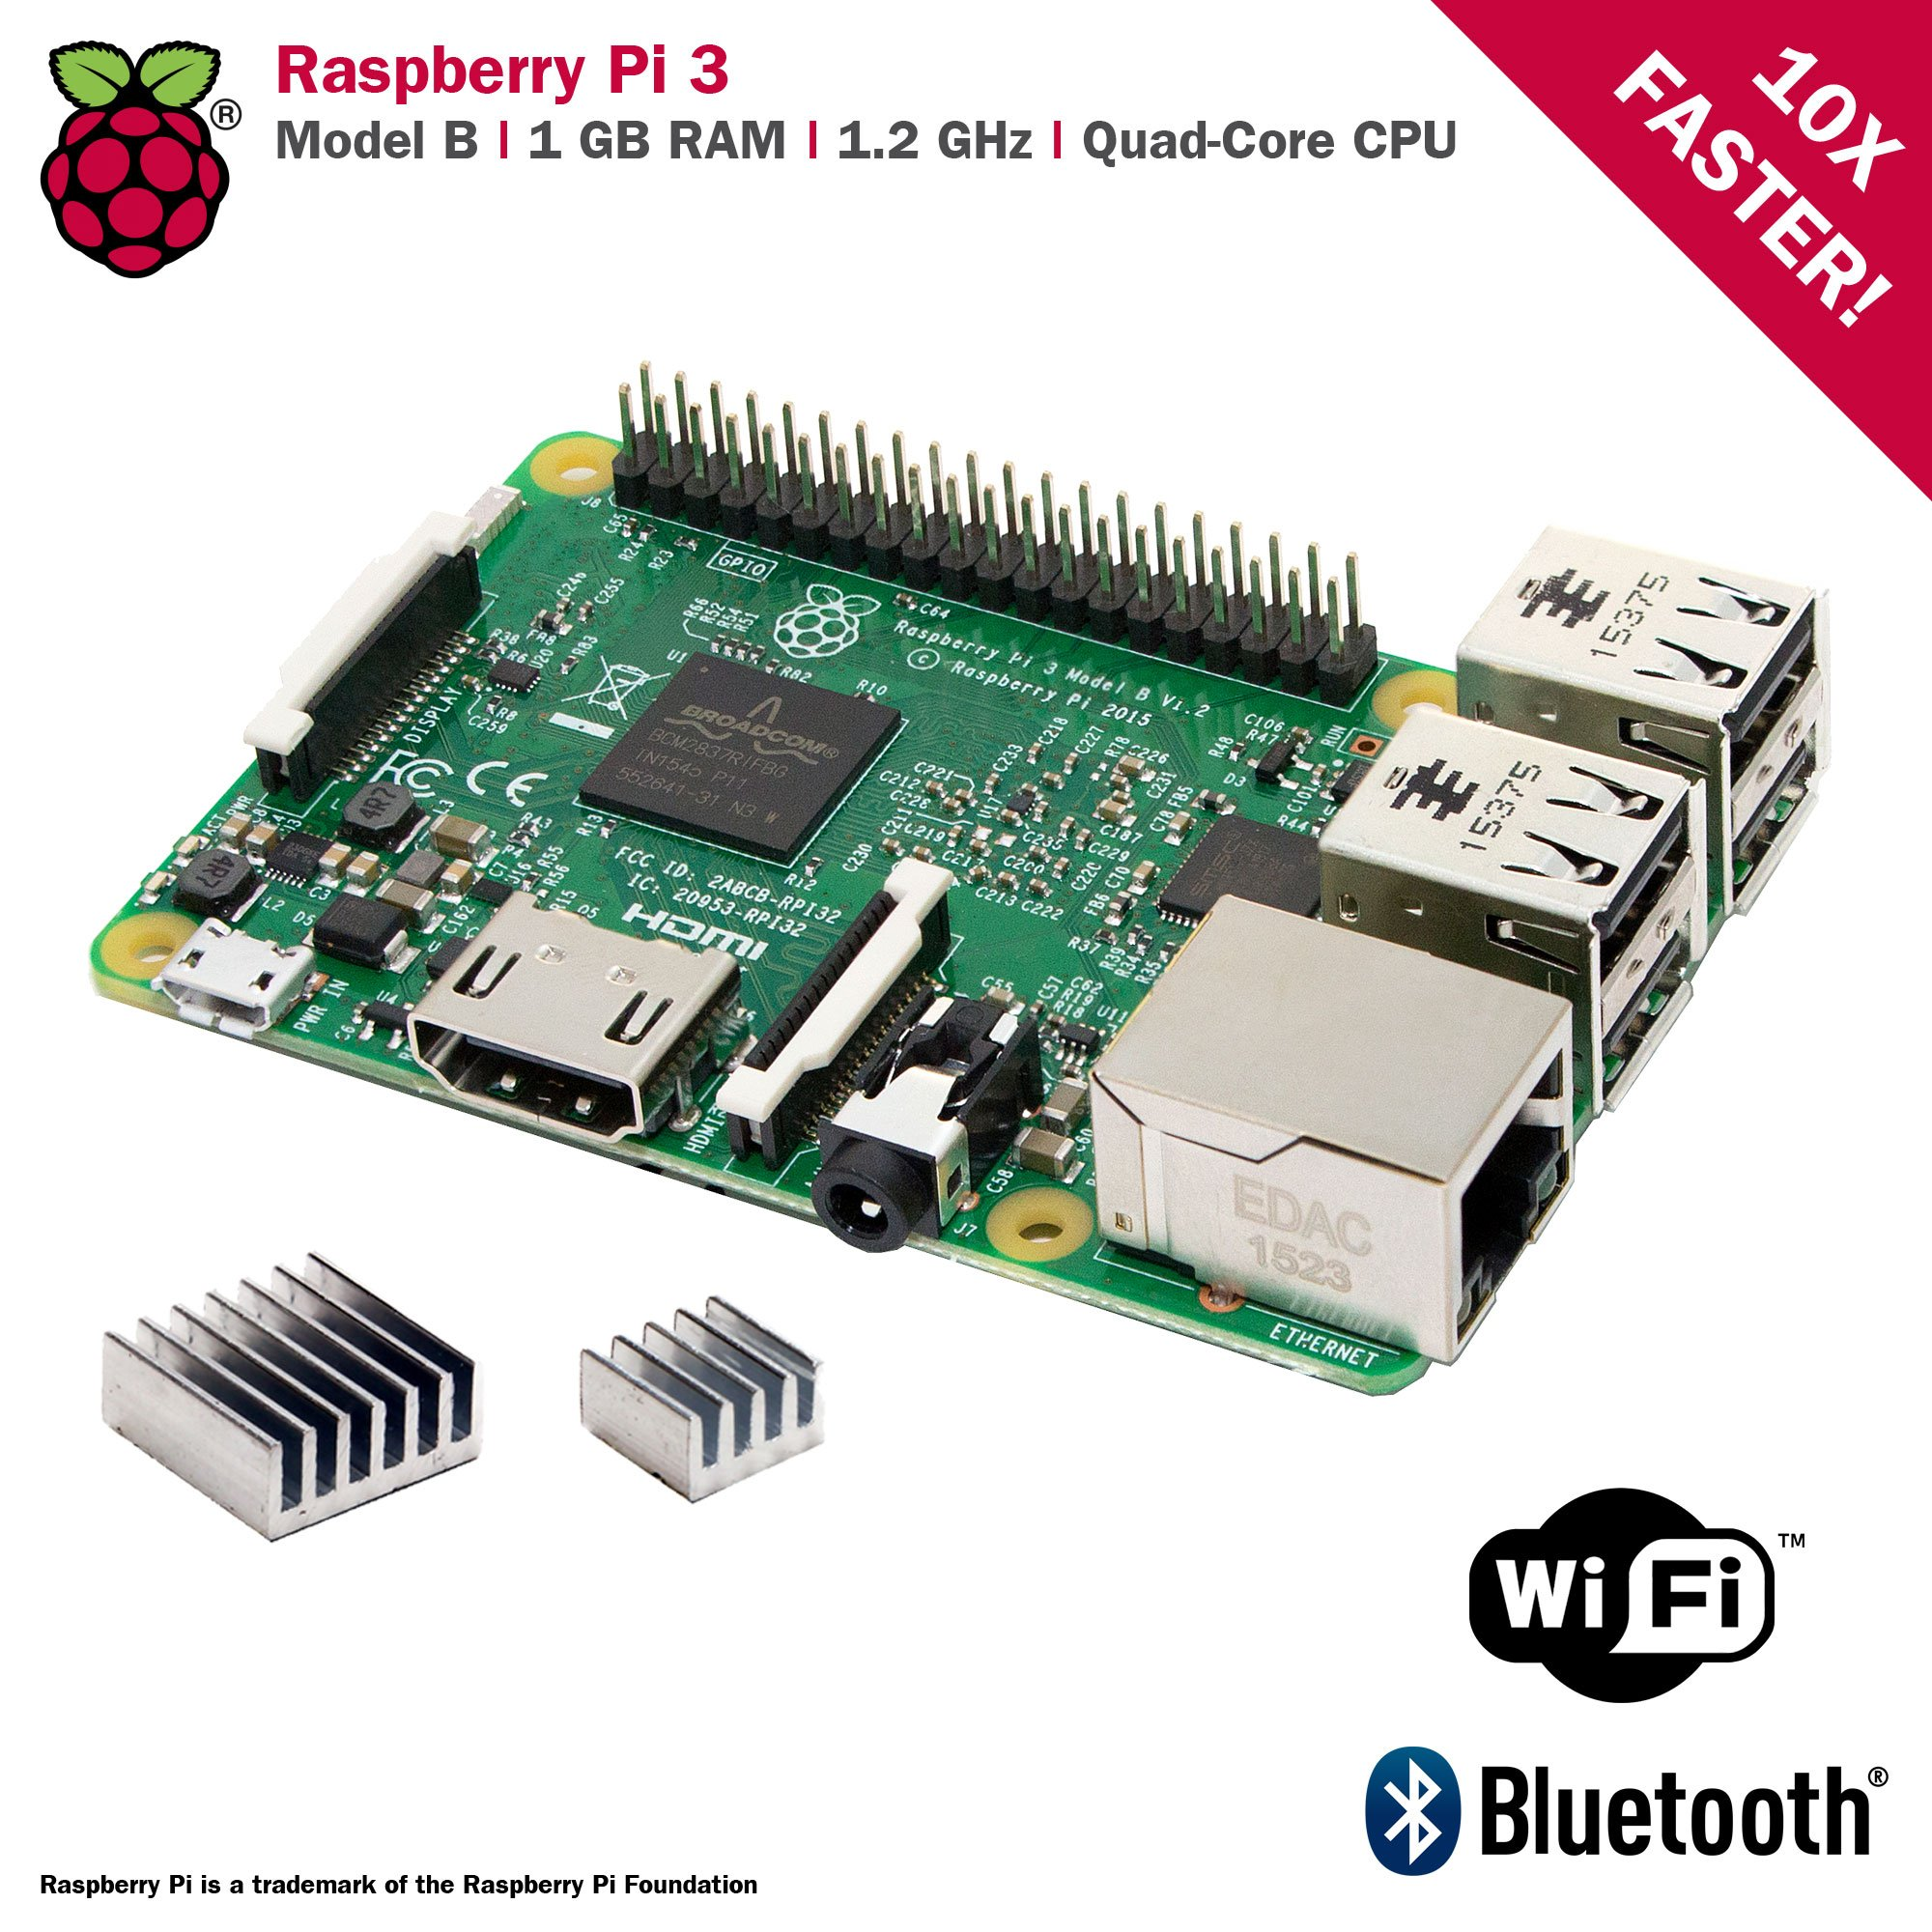 CanaKit Raspberry Pi 3 Kit with Clear Case and 2.5A Power Supply by CanaKit (Image #4)